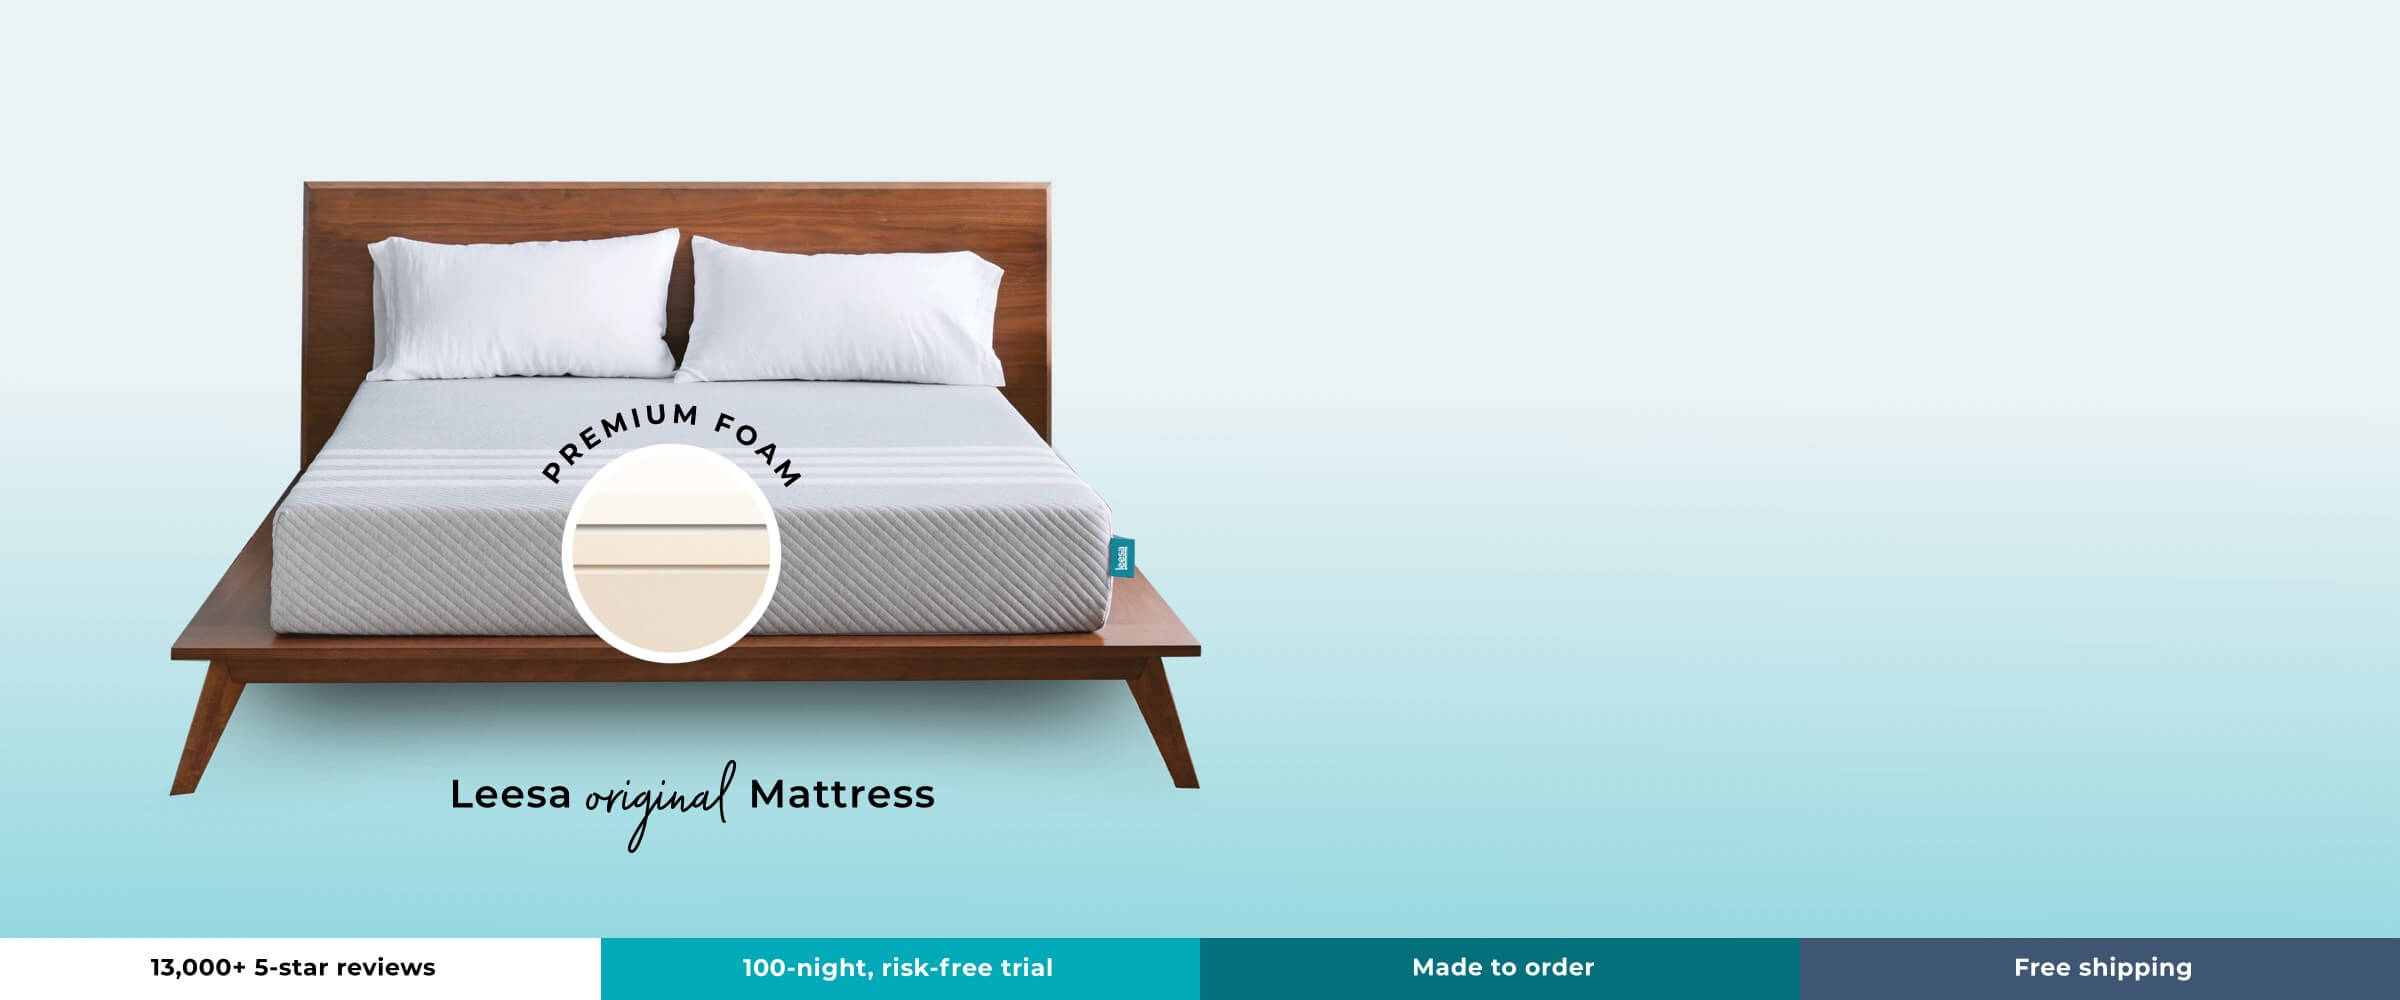 13,000+ 5-star reviews - 100-night mattress trial - made to order - free shipping - leesa original mattress